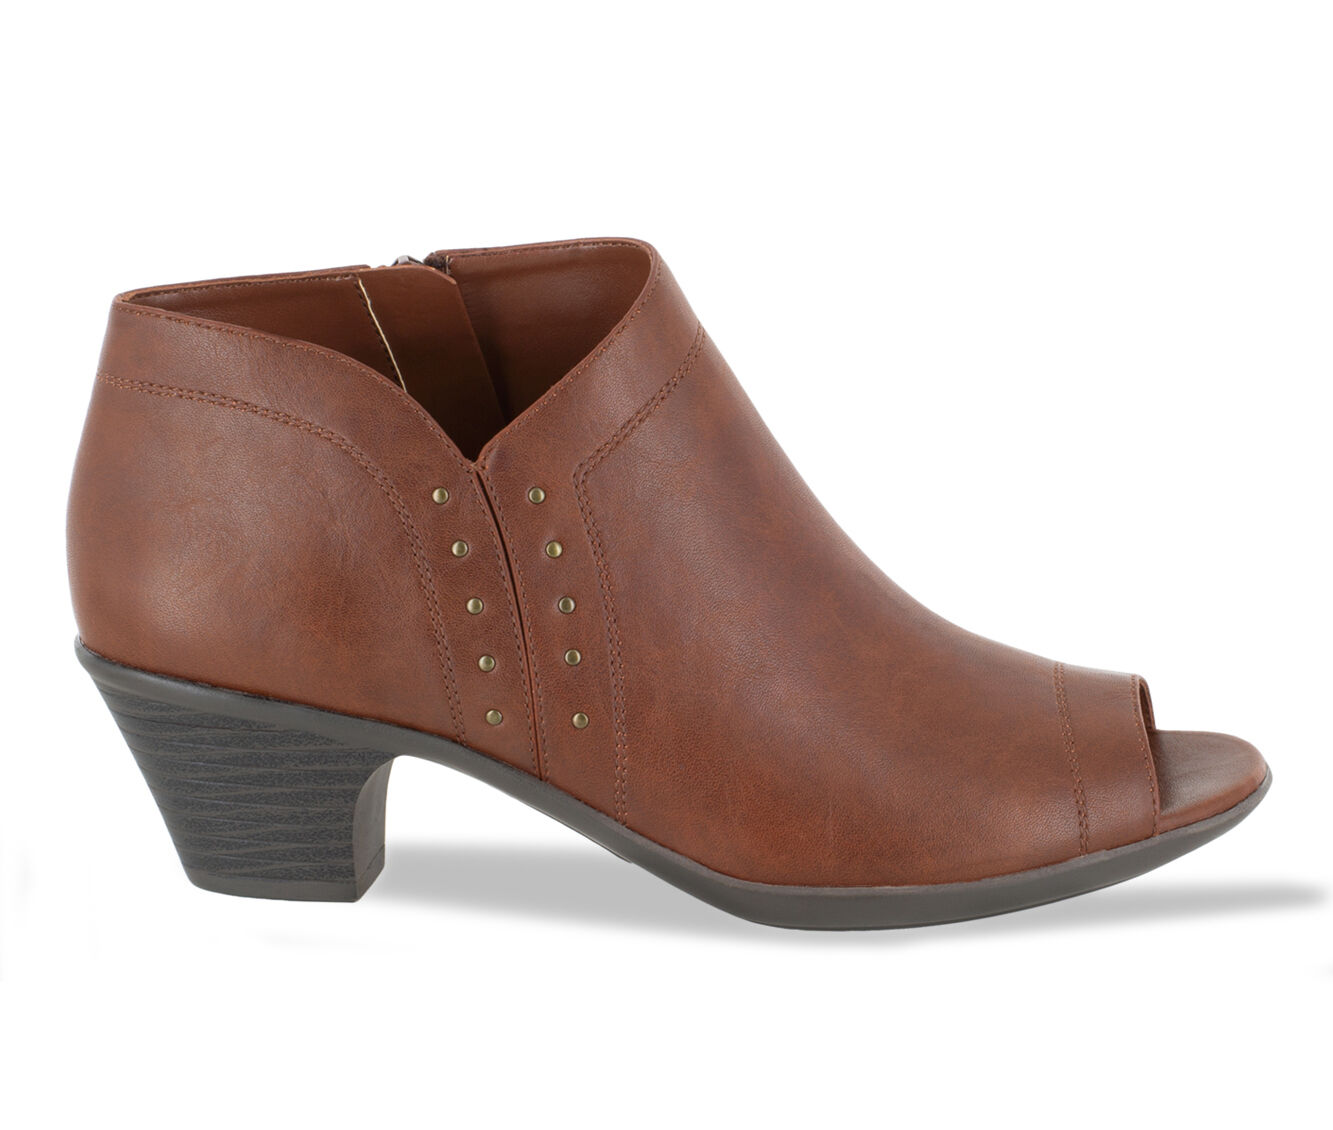 buy latest style Women's Easy Street Voyage Shoes Tan